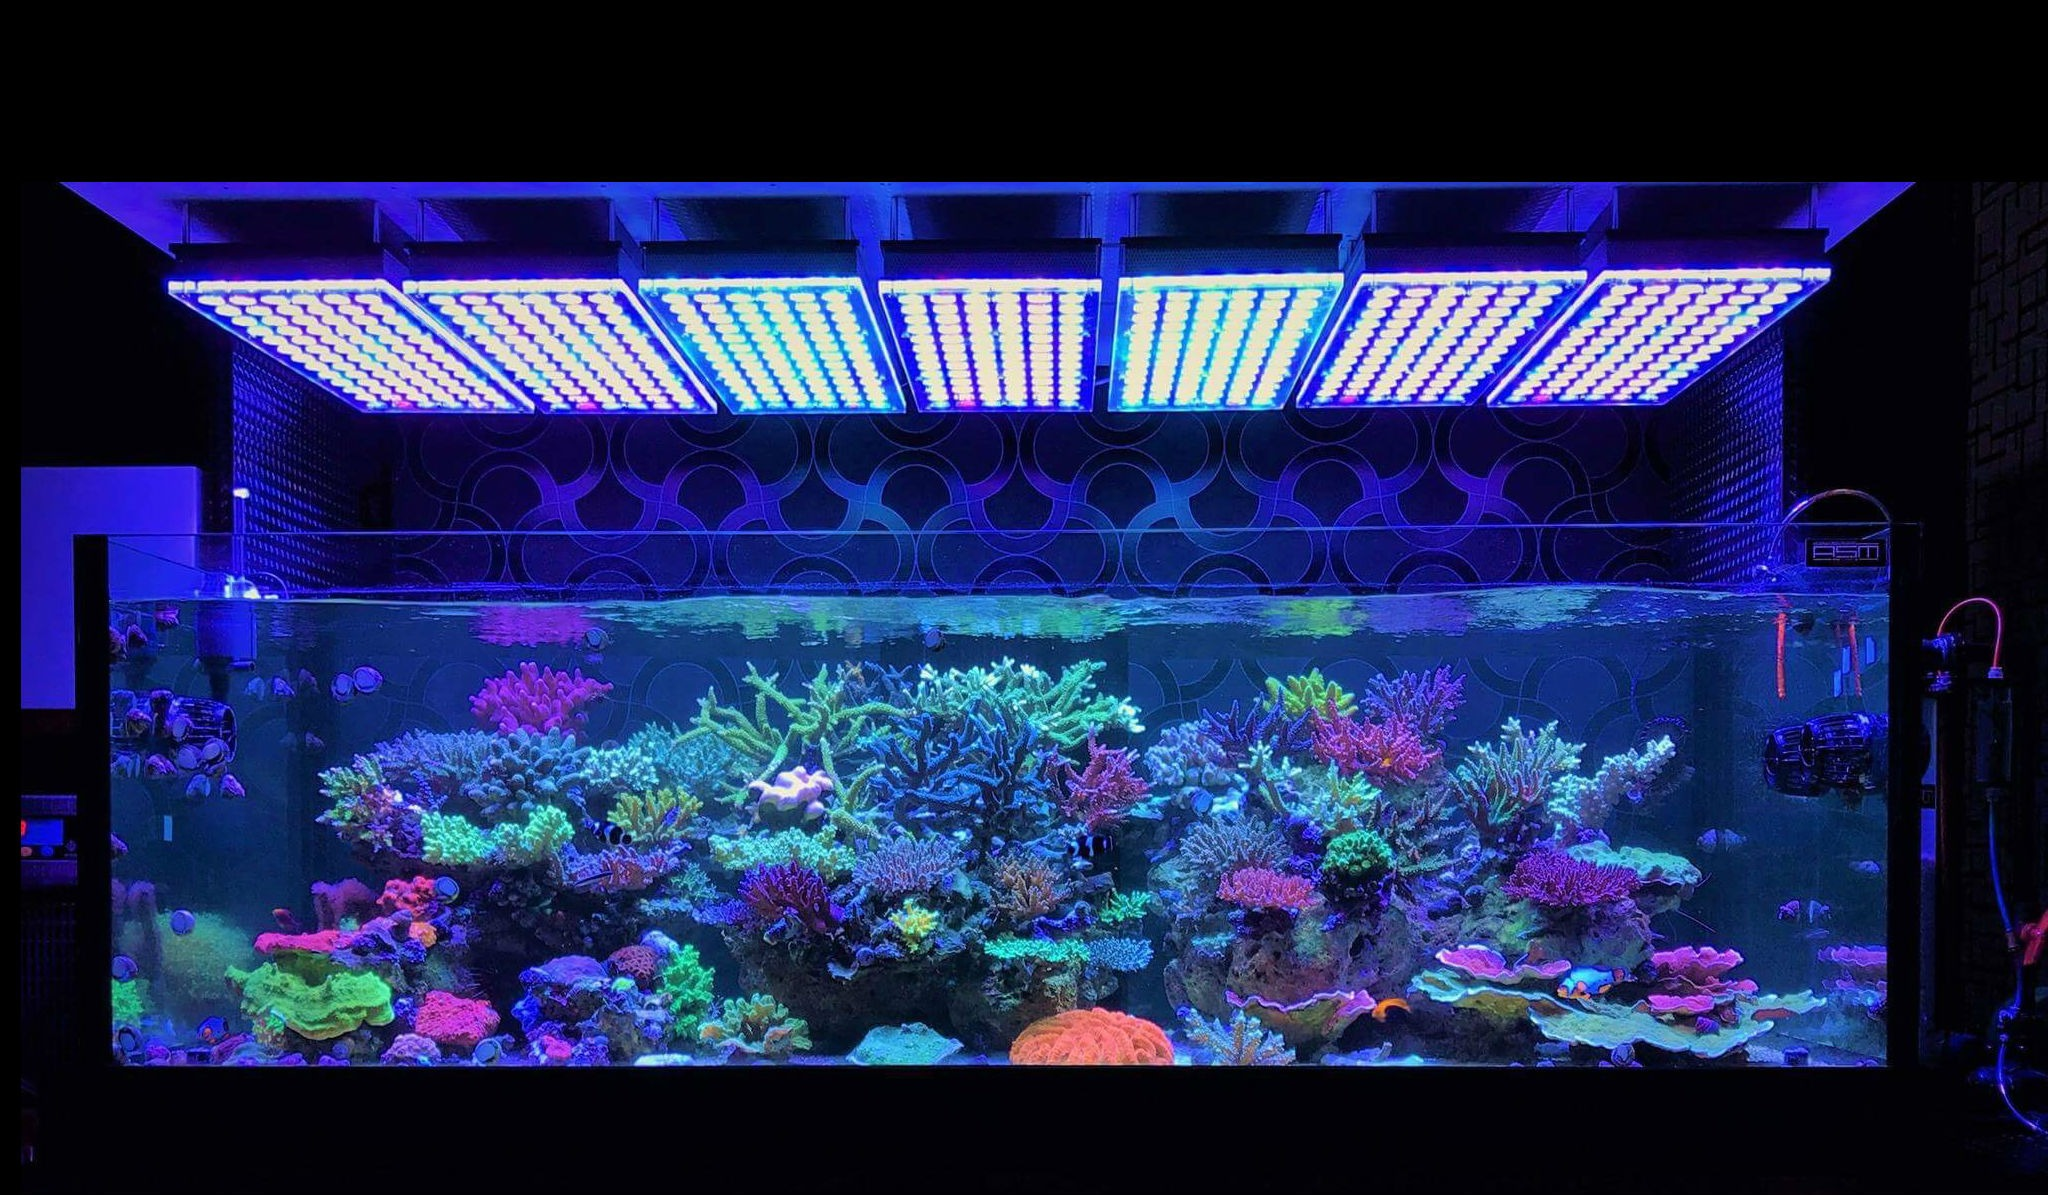 https://nl.orphek.com/led/wp-content/uploads/2017/06/Aquarium-LED-light-Orphek-Atlantik-V4-reef-1.jpg